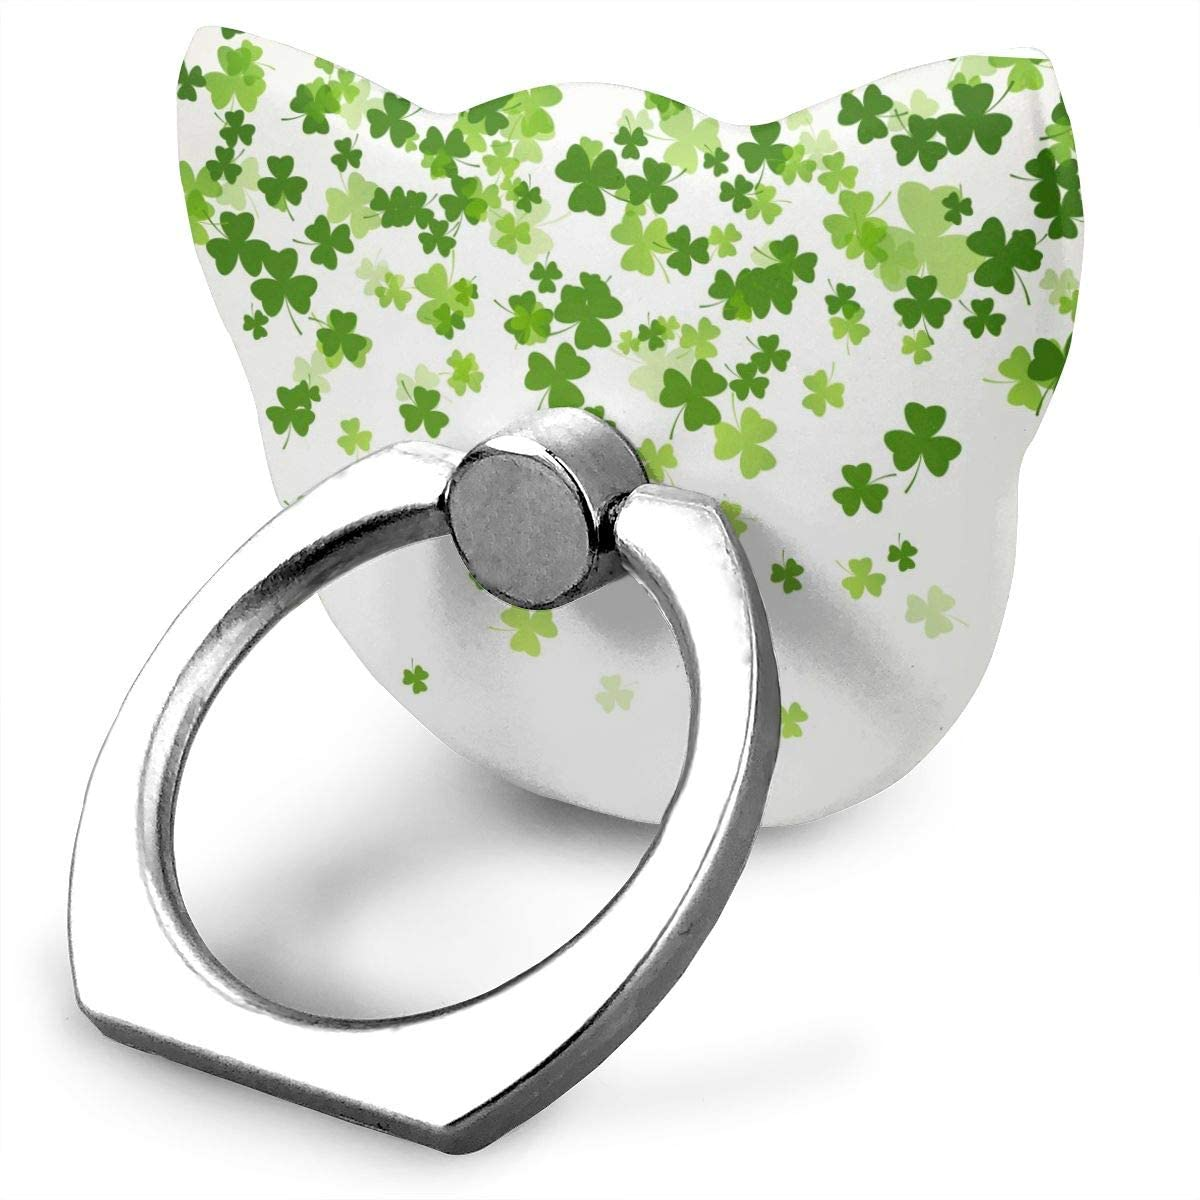 Universal Phone Ring Holder St. Patrick's Day Adjustable 360°Rotation Cat Shape Finger Grip Loop Cell Phone Stand for Phone X/6/6s/7/8/8/10/11 Plus Android Smartphone